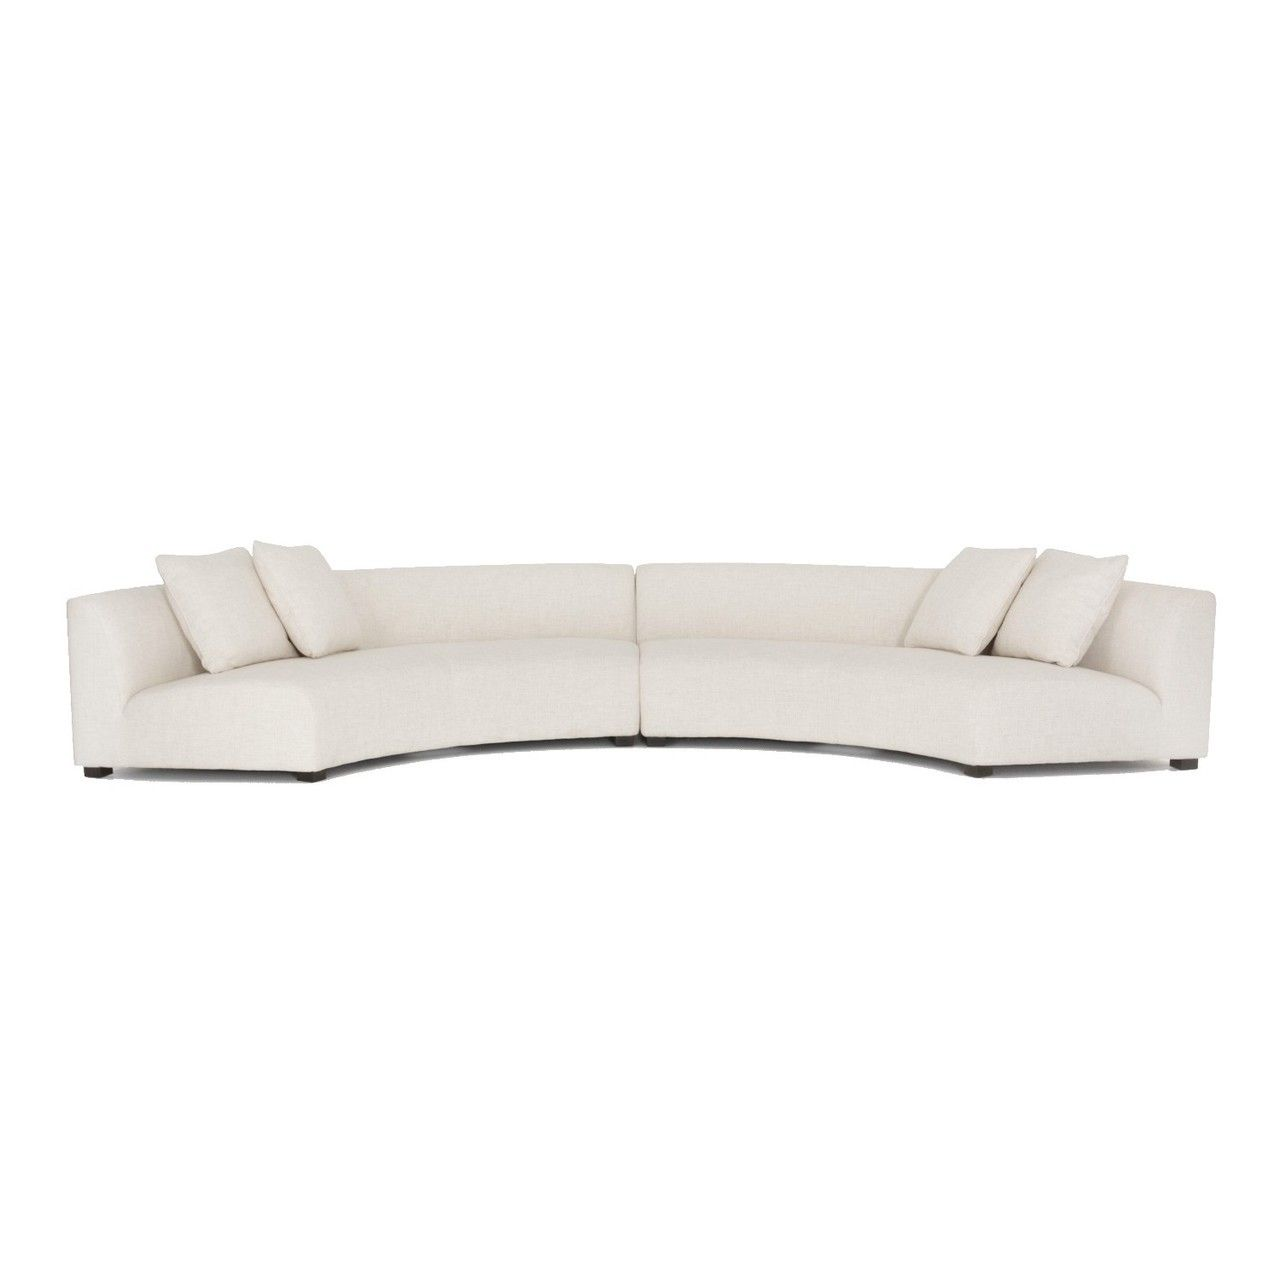 Liam Modern Cream 2 Piece Curved Sectional Sofa Curved Sectional Sectional Sofa Leather Sectional Sofas